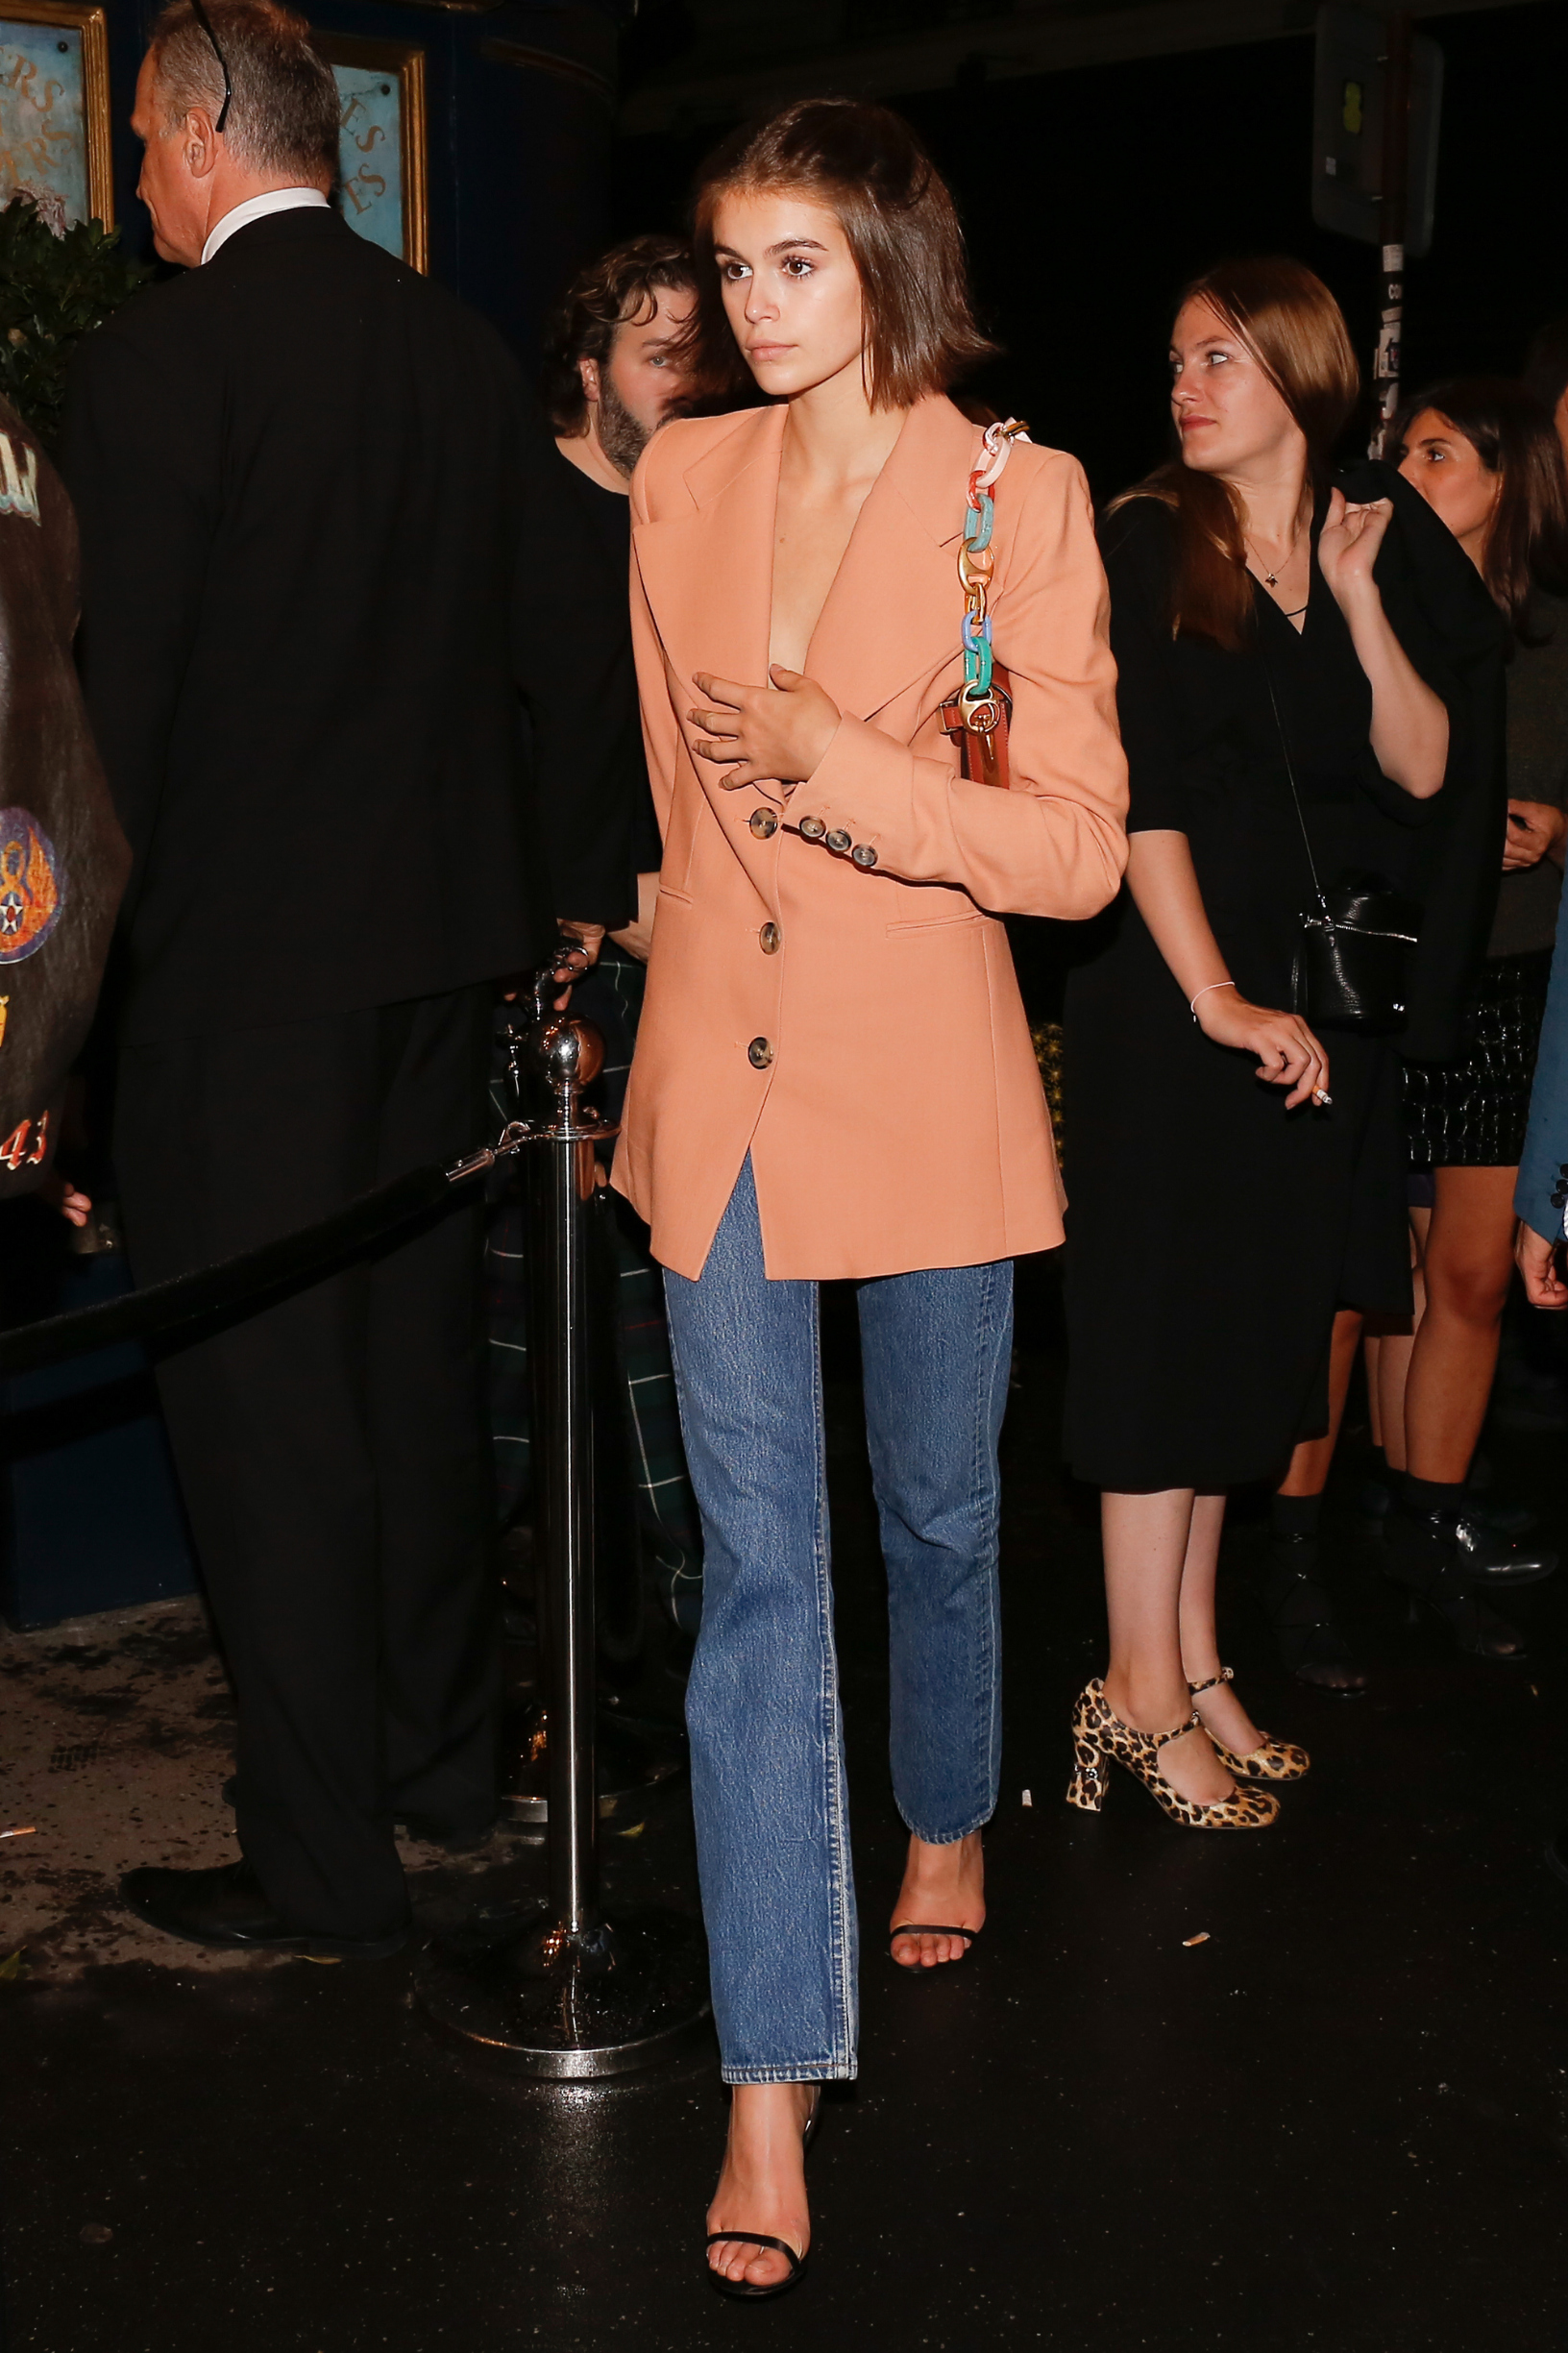 October 1st, 2019 - Paris  ****** Exclusive ******                            Kaia Gerber leaving Miu Miu after party during the Paris Fashion Week 2019  ****** BYLINE MUST READ : © Spread Pictures ******  ****** No Web Usage before agreement ******  ******Please hide the children's faces prior to the publication******  ****** Stricly No Mobile Phone Application or Apps use without our Prior Agreement ******  Enquiries at photo@spreadpictures.com, Image: 474797957, License: Rights-managed, Restrictions: WORLDWIDE, Model Release: no, Credit line: MCC / Spread Pictures / Profimedia